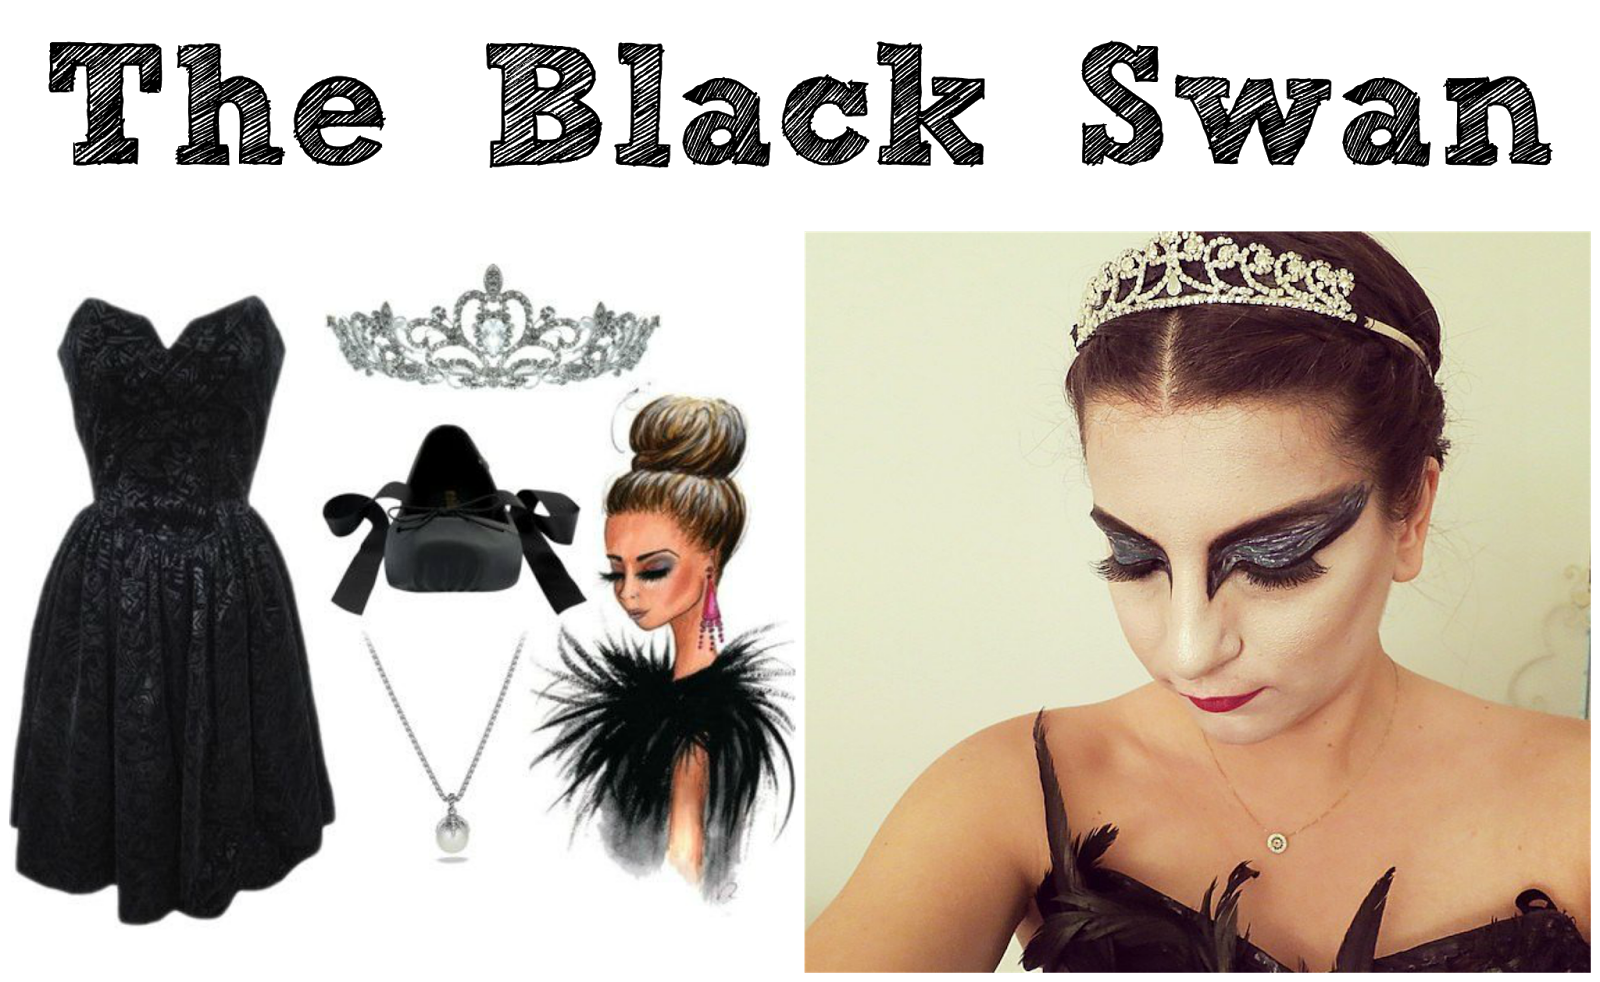 5 DIY Halloween Costumes - Natalie Portman - Black Swan | Life in the Sunshine